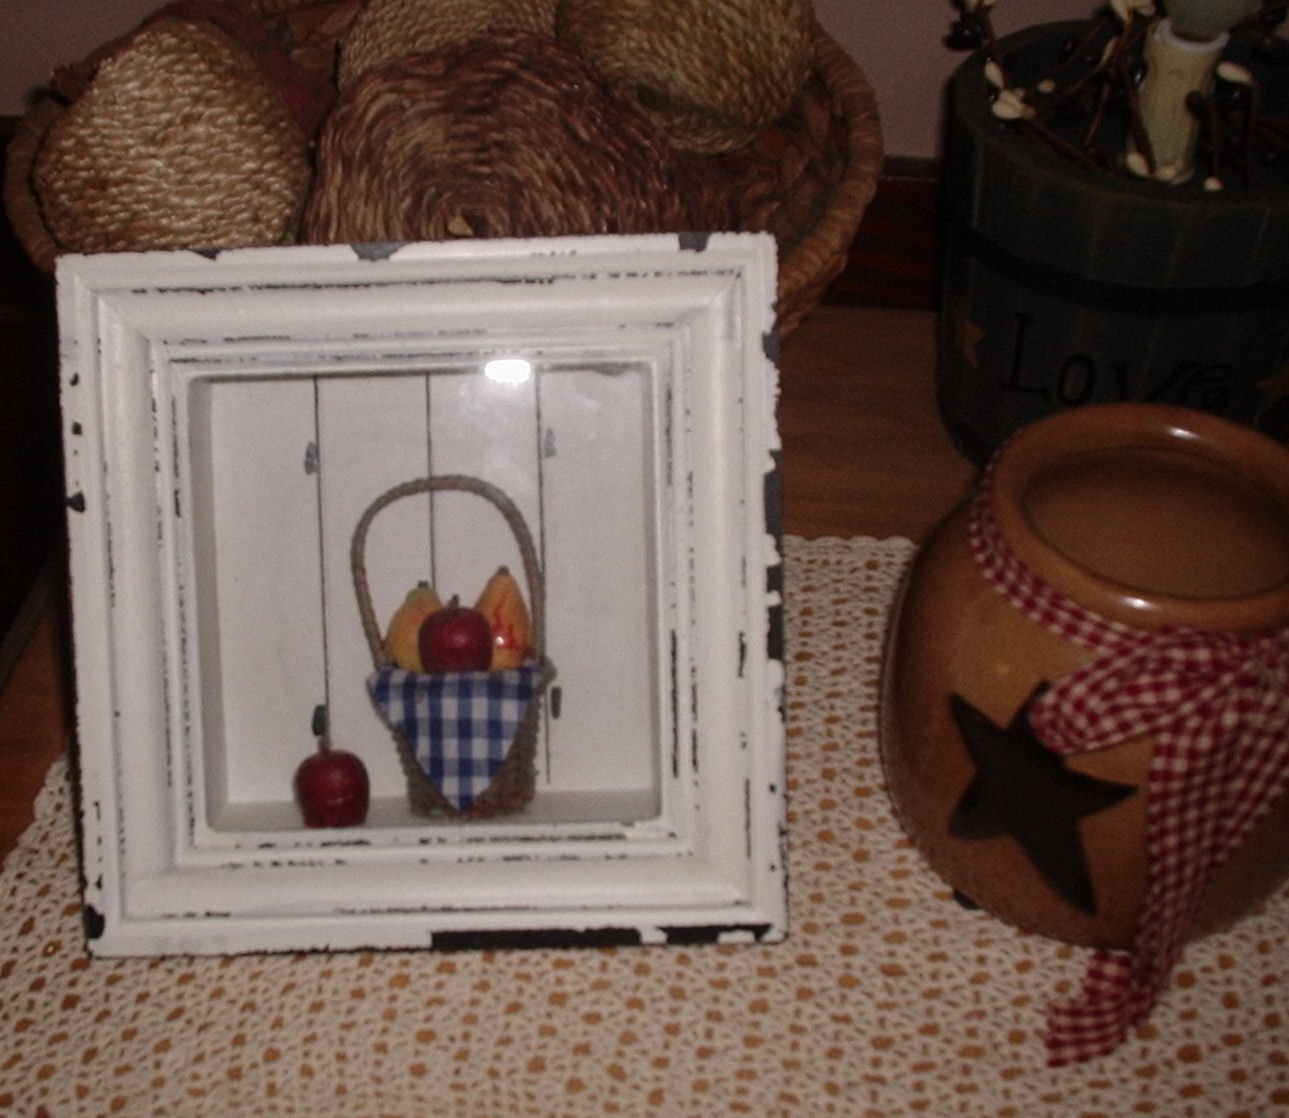 Country Shabby Shadow Box Wicker Basket Fruit Dennis East Int